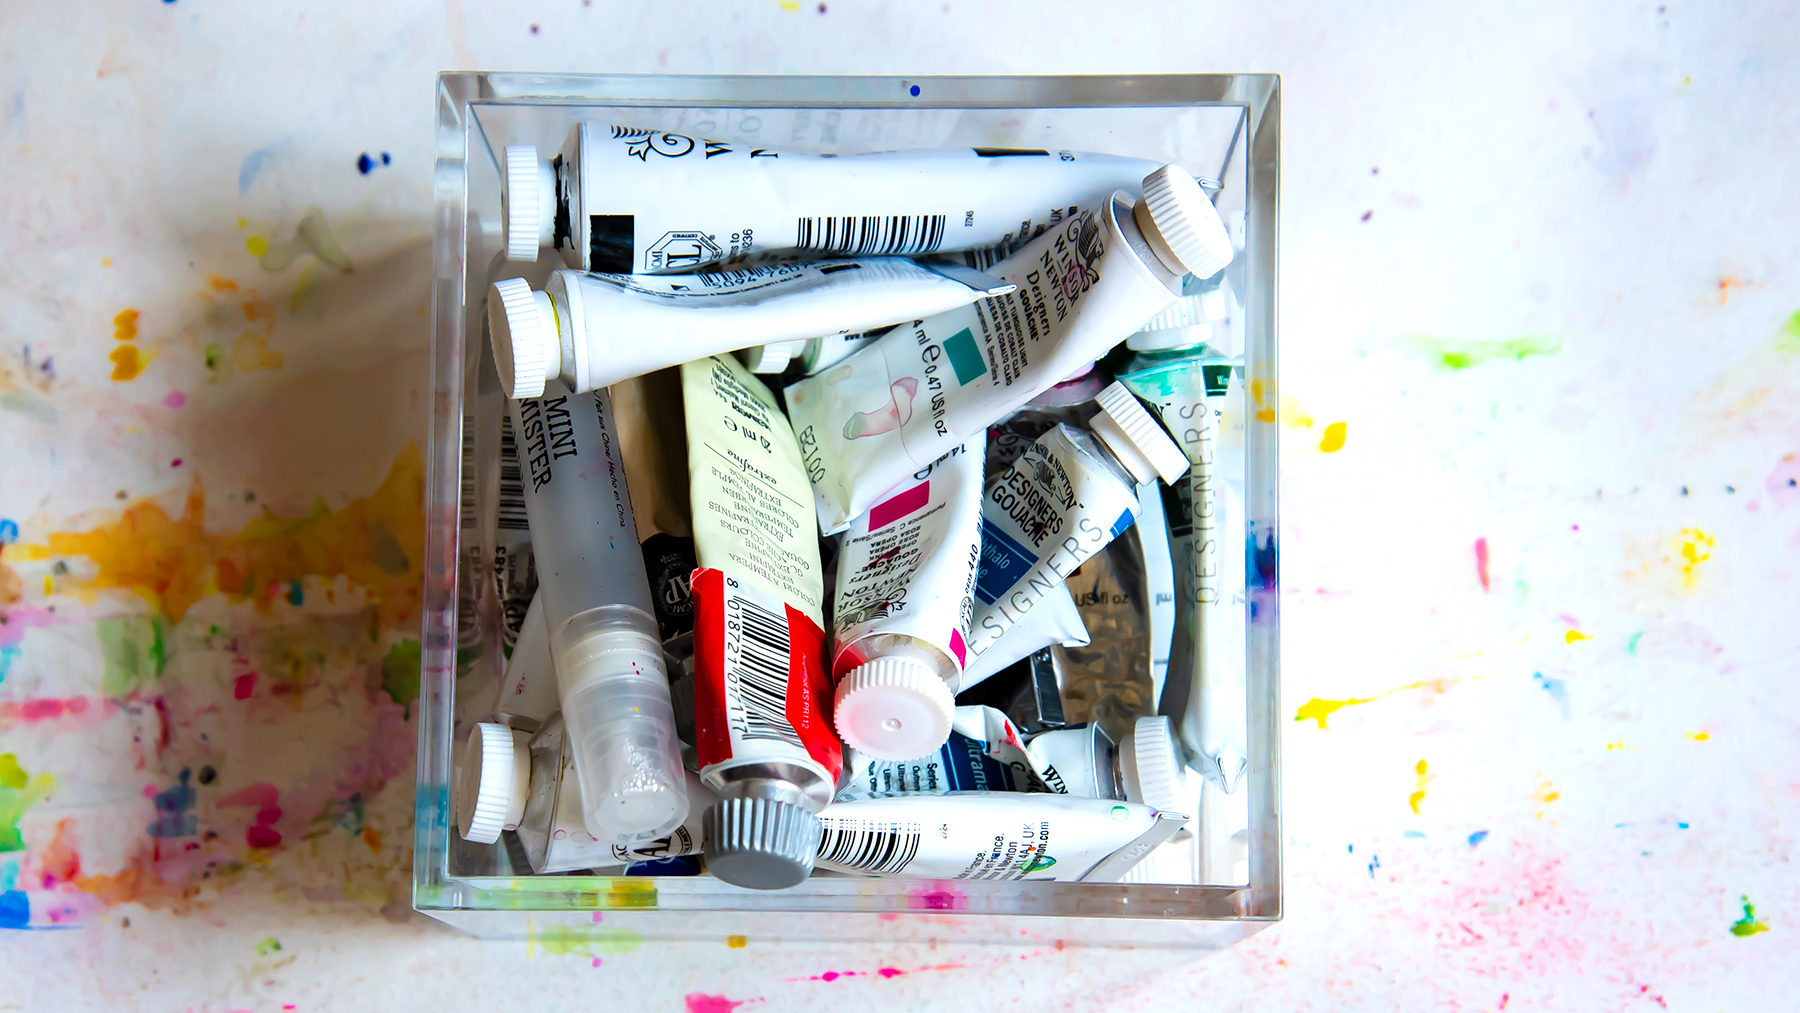 All of my gouache paint tubes fit in one clear container.